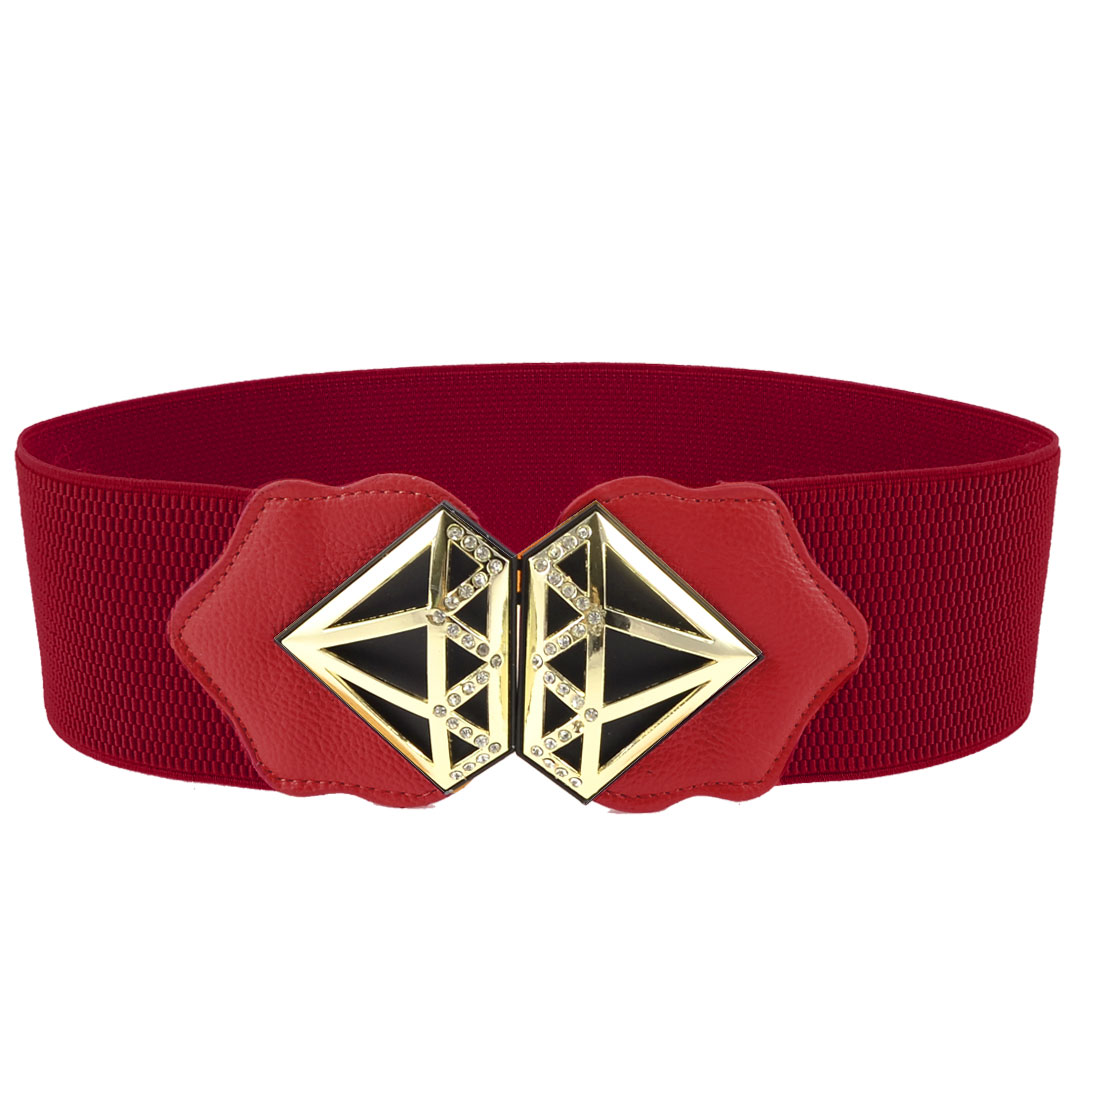 Lady Gold Tone Hollow Metal Detailing Rhinestone Red Elastic Waist Belt Band